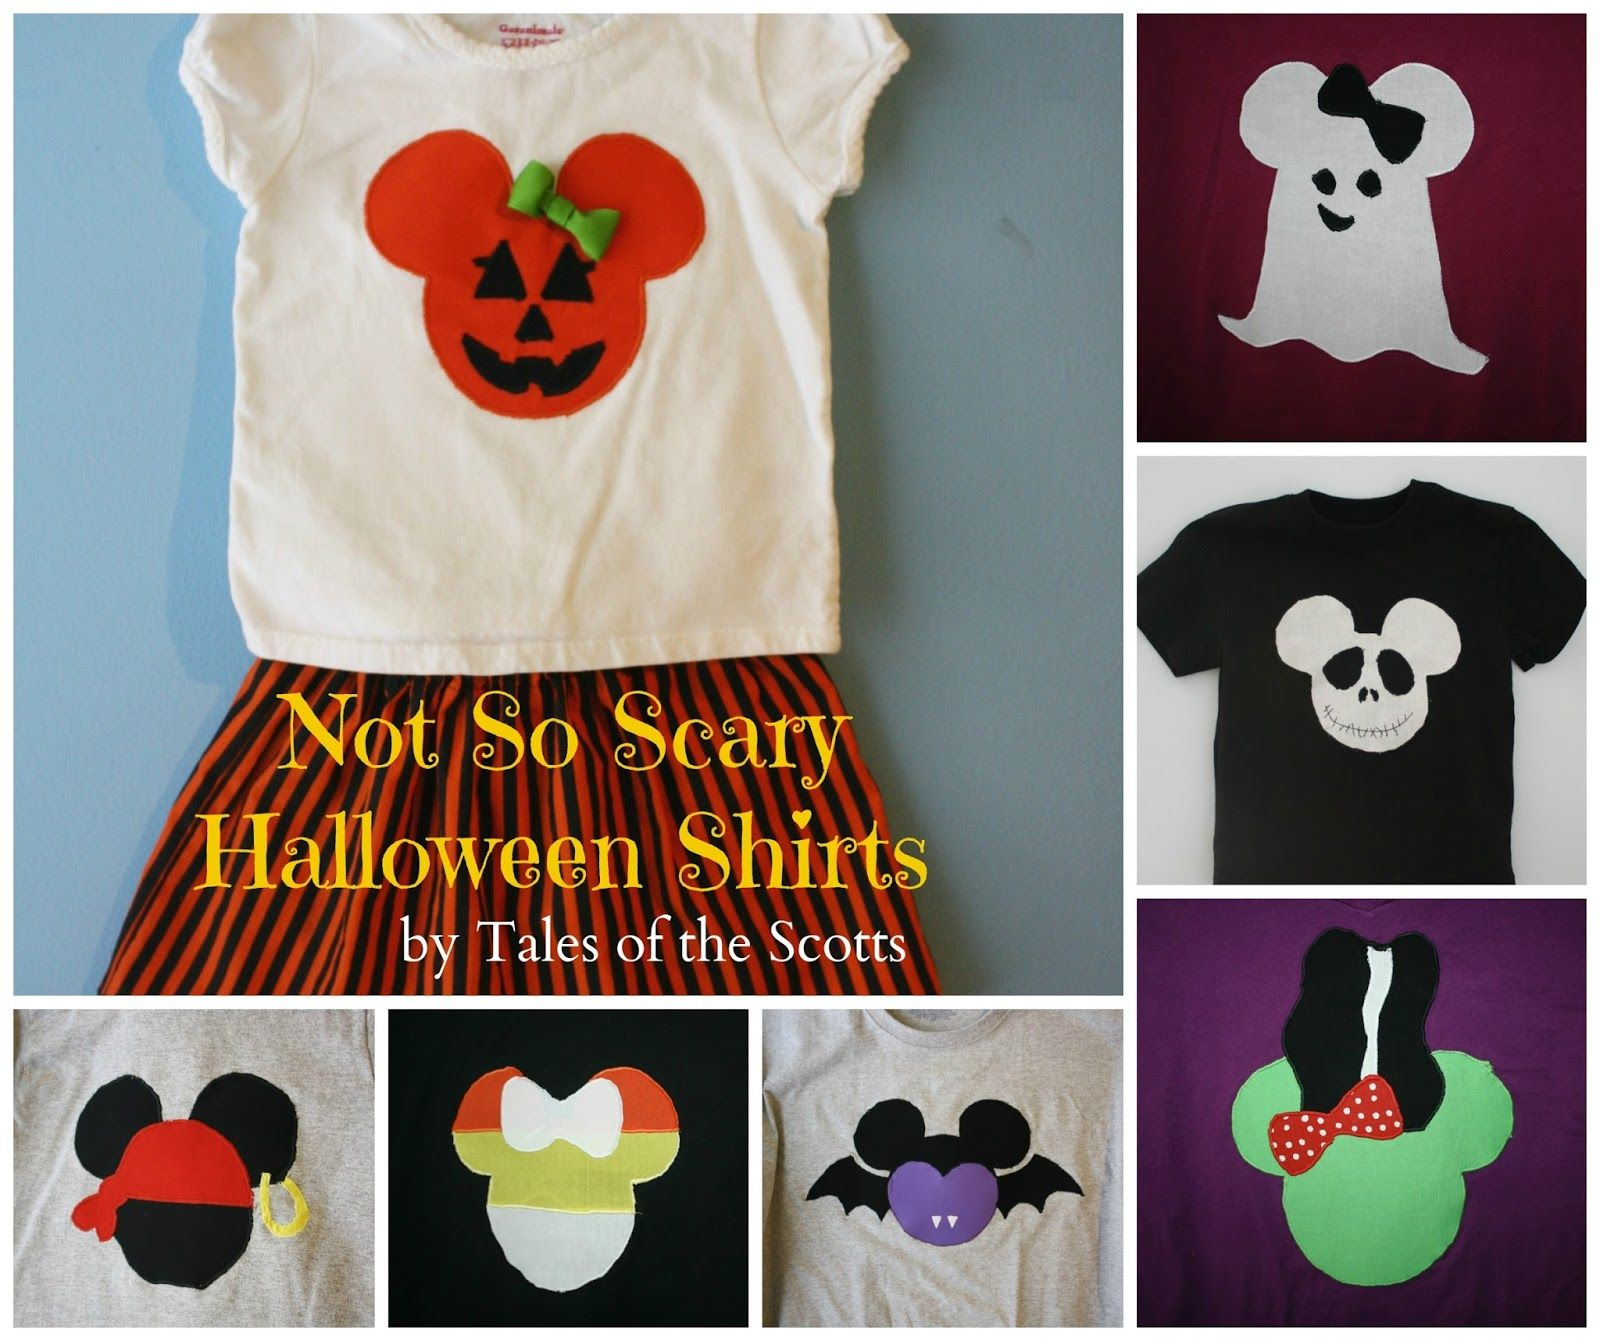 Disney Halloween Shirt Ideas.Tales Of The Scotts Not So Scary Halloween Shirts